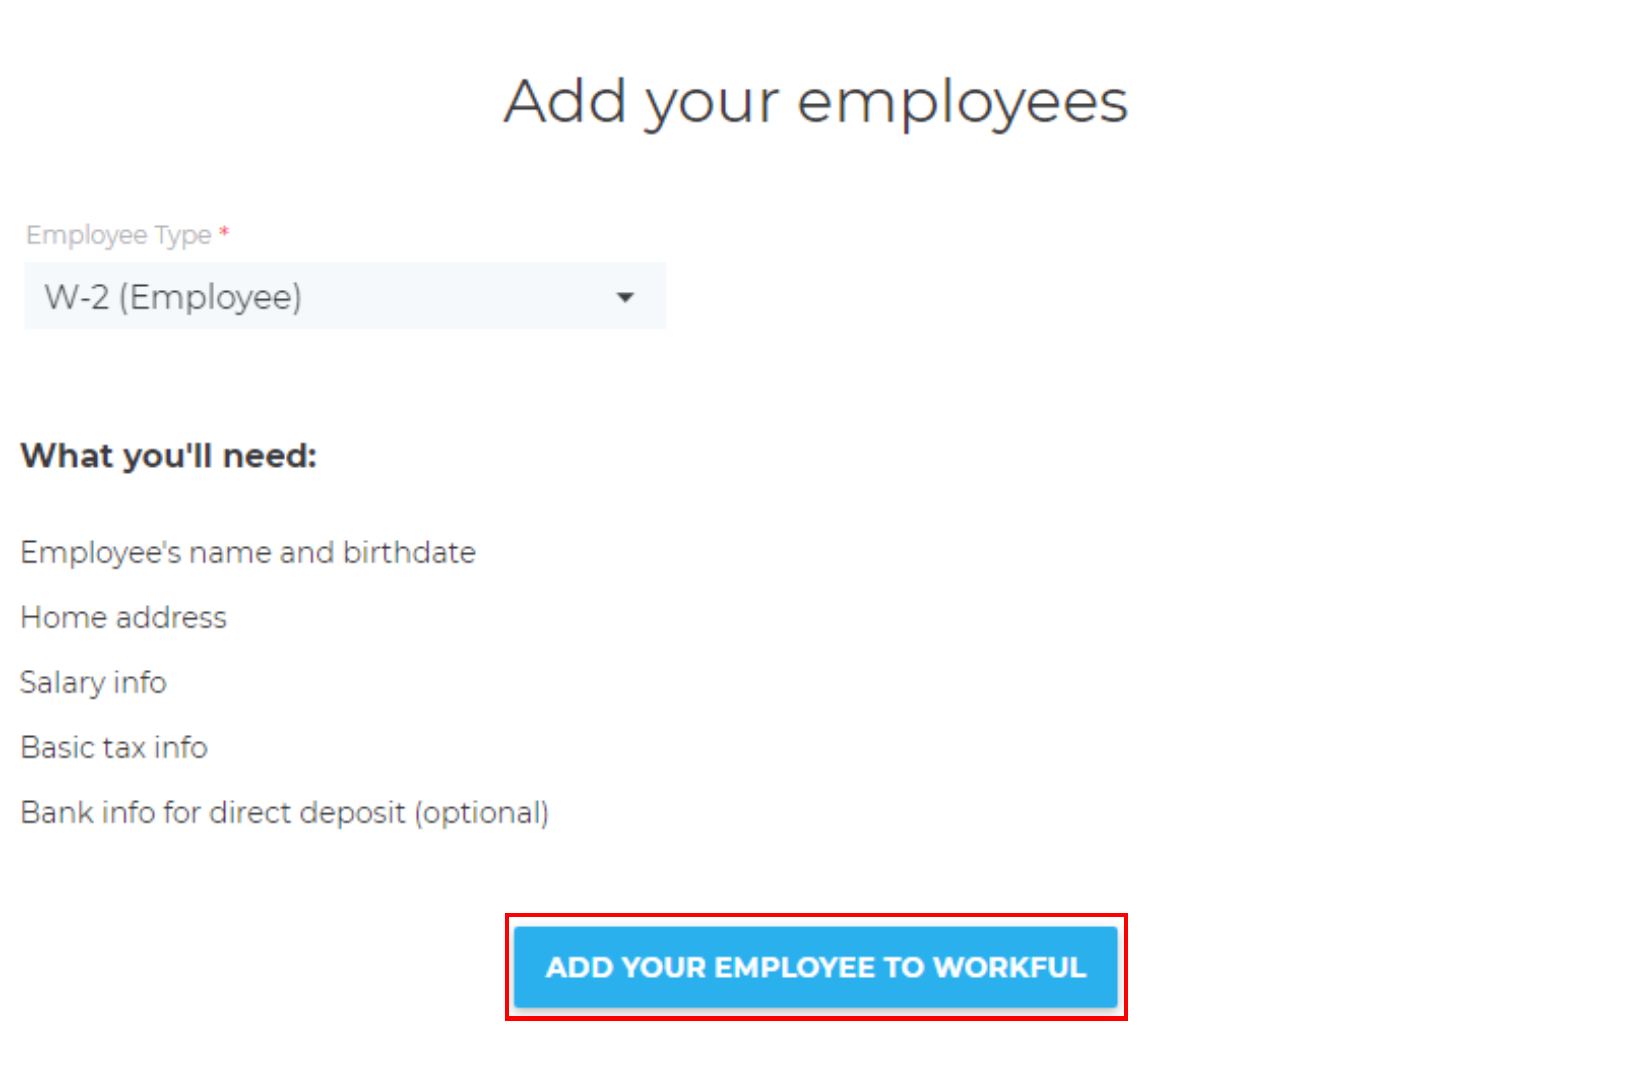 Click_Add_Employee_to_Workful.png